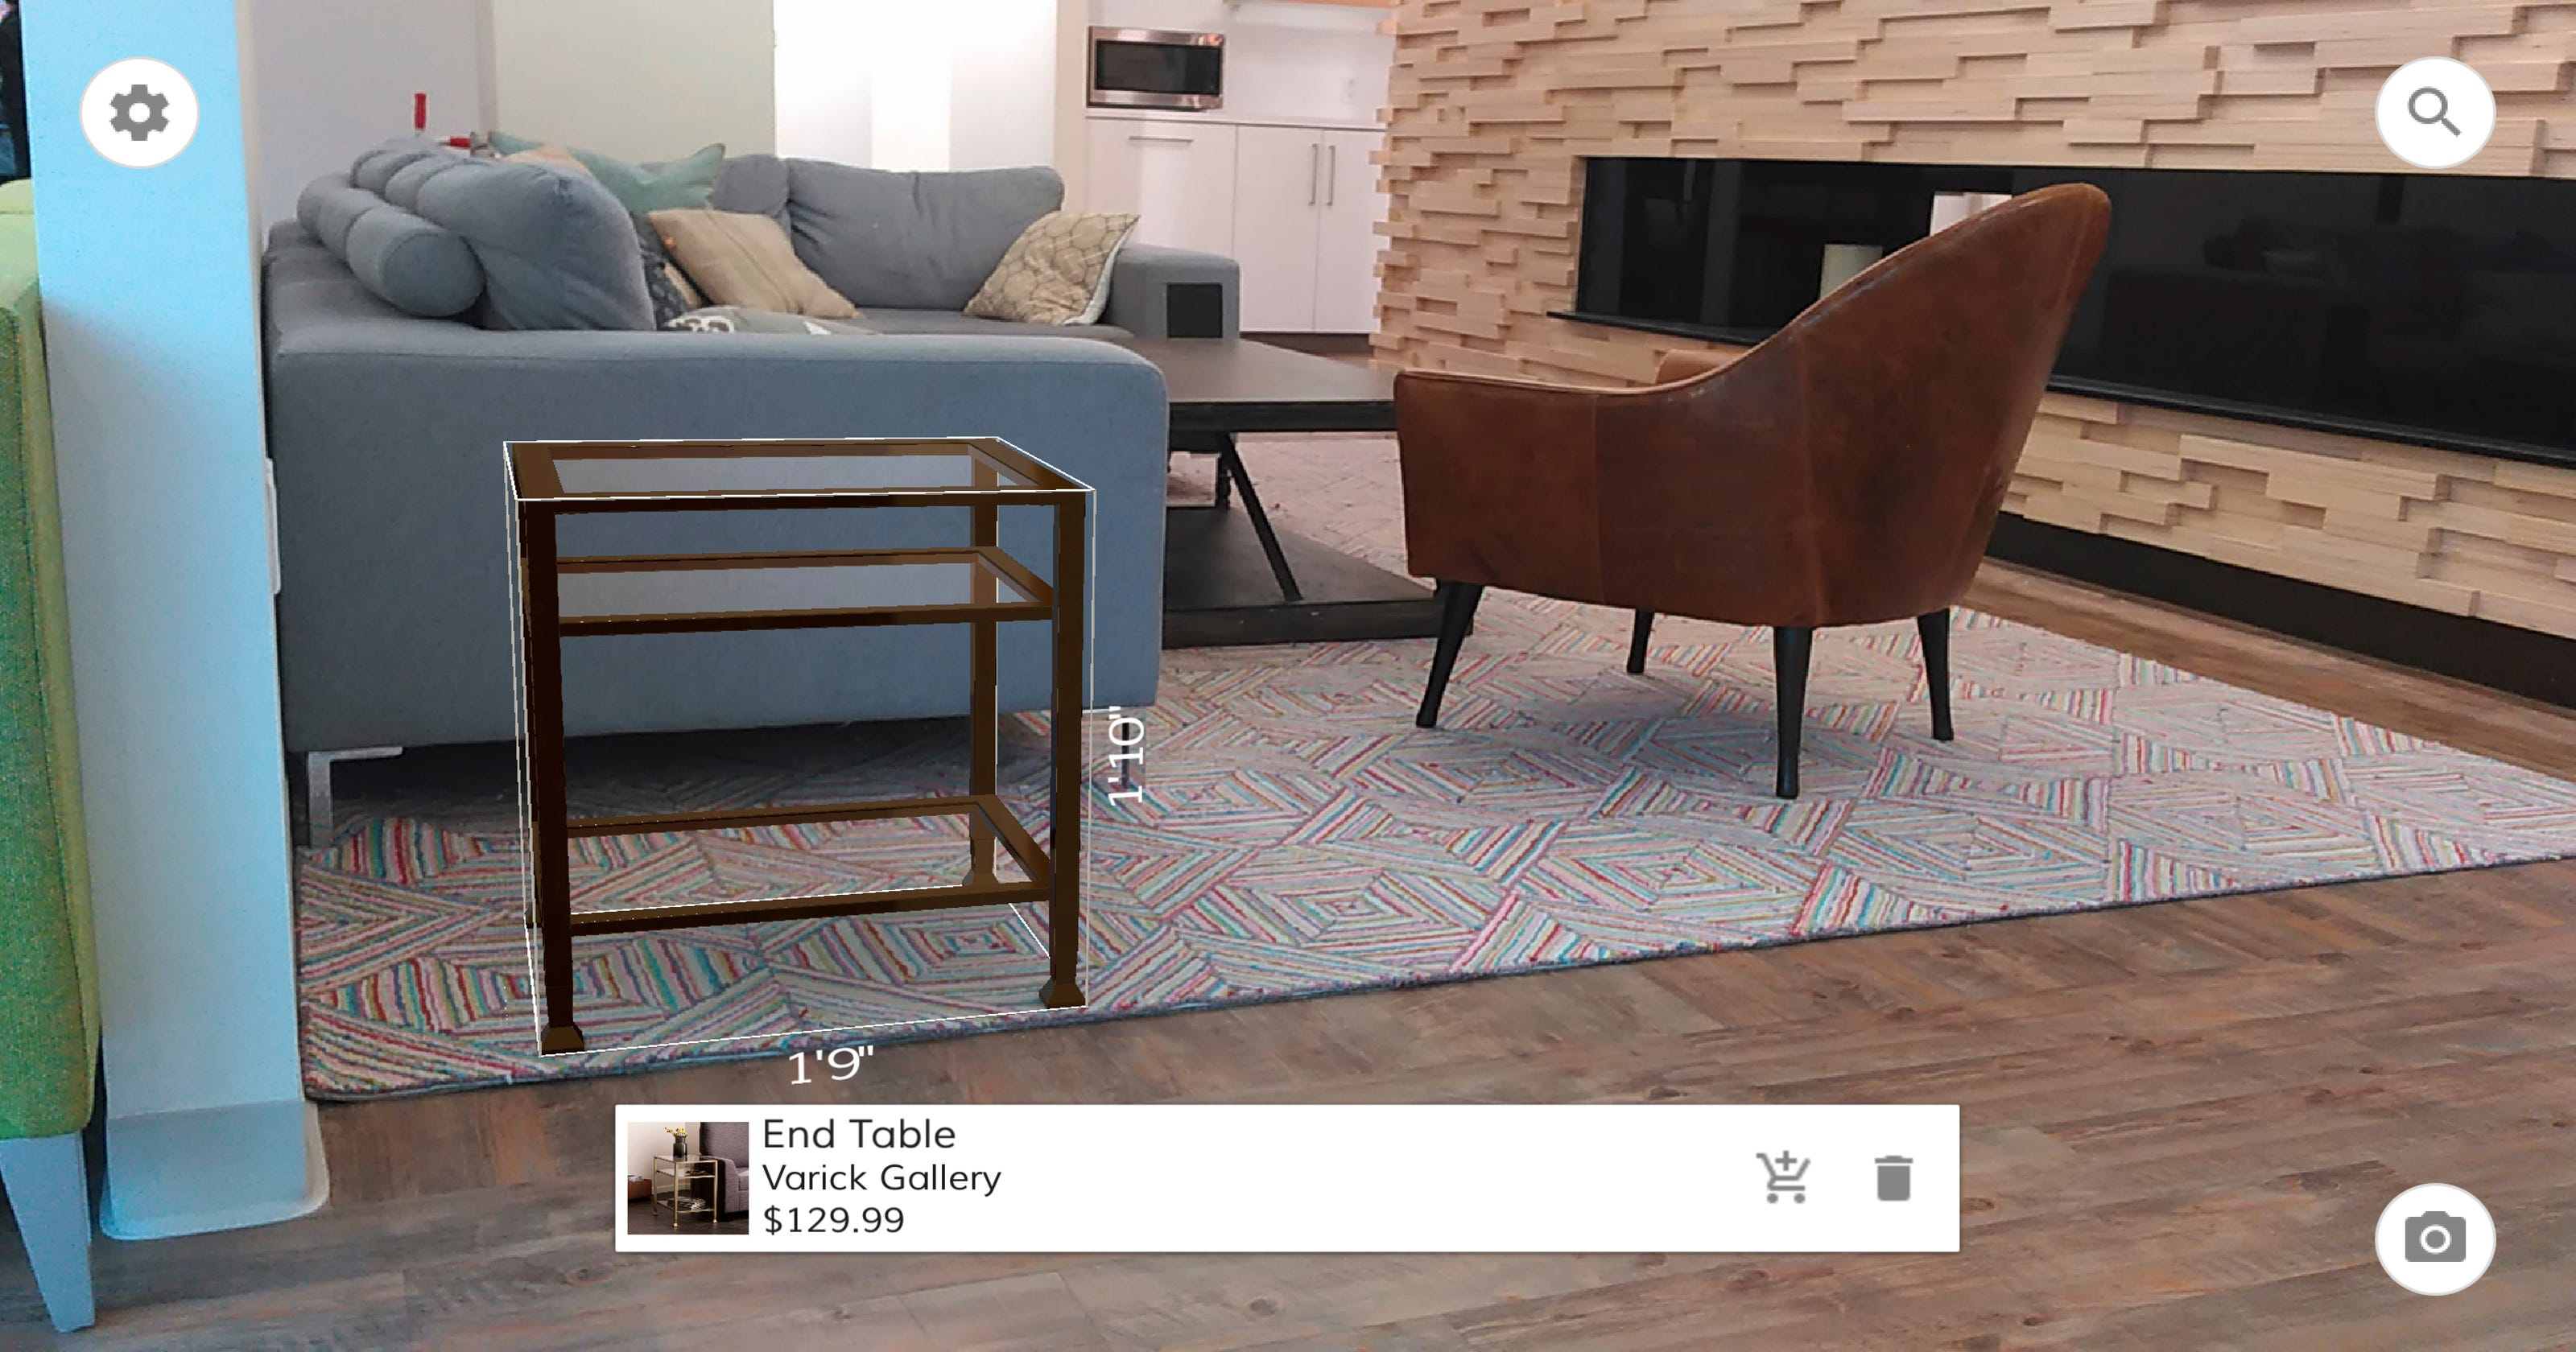 Buying furniture online heres 5 tips for the best deals